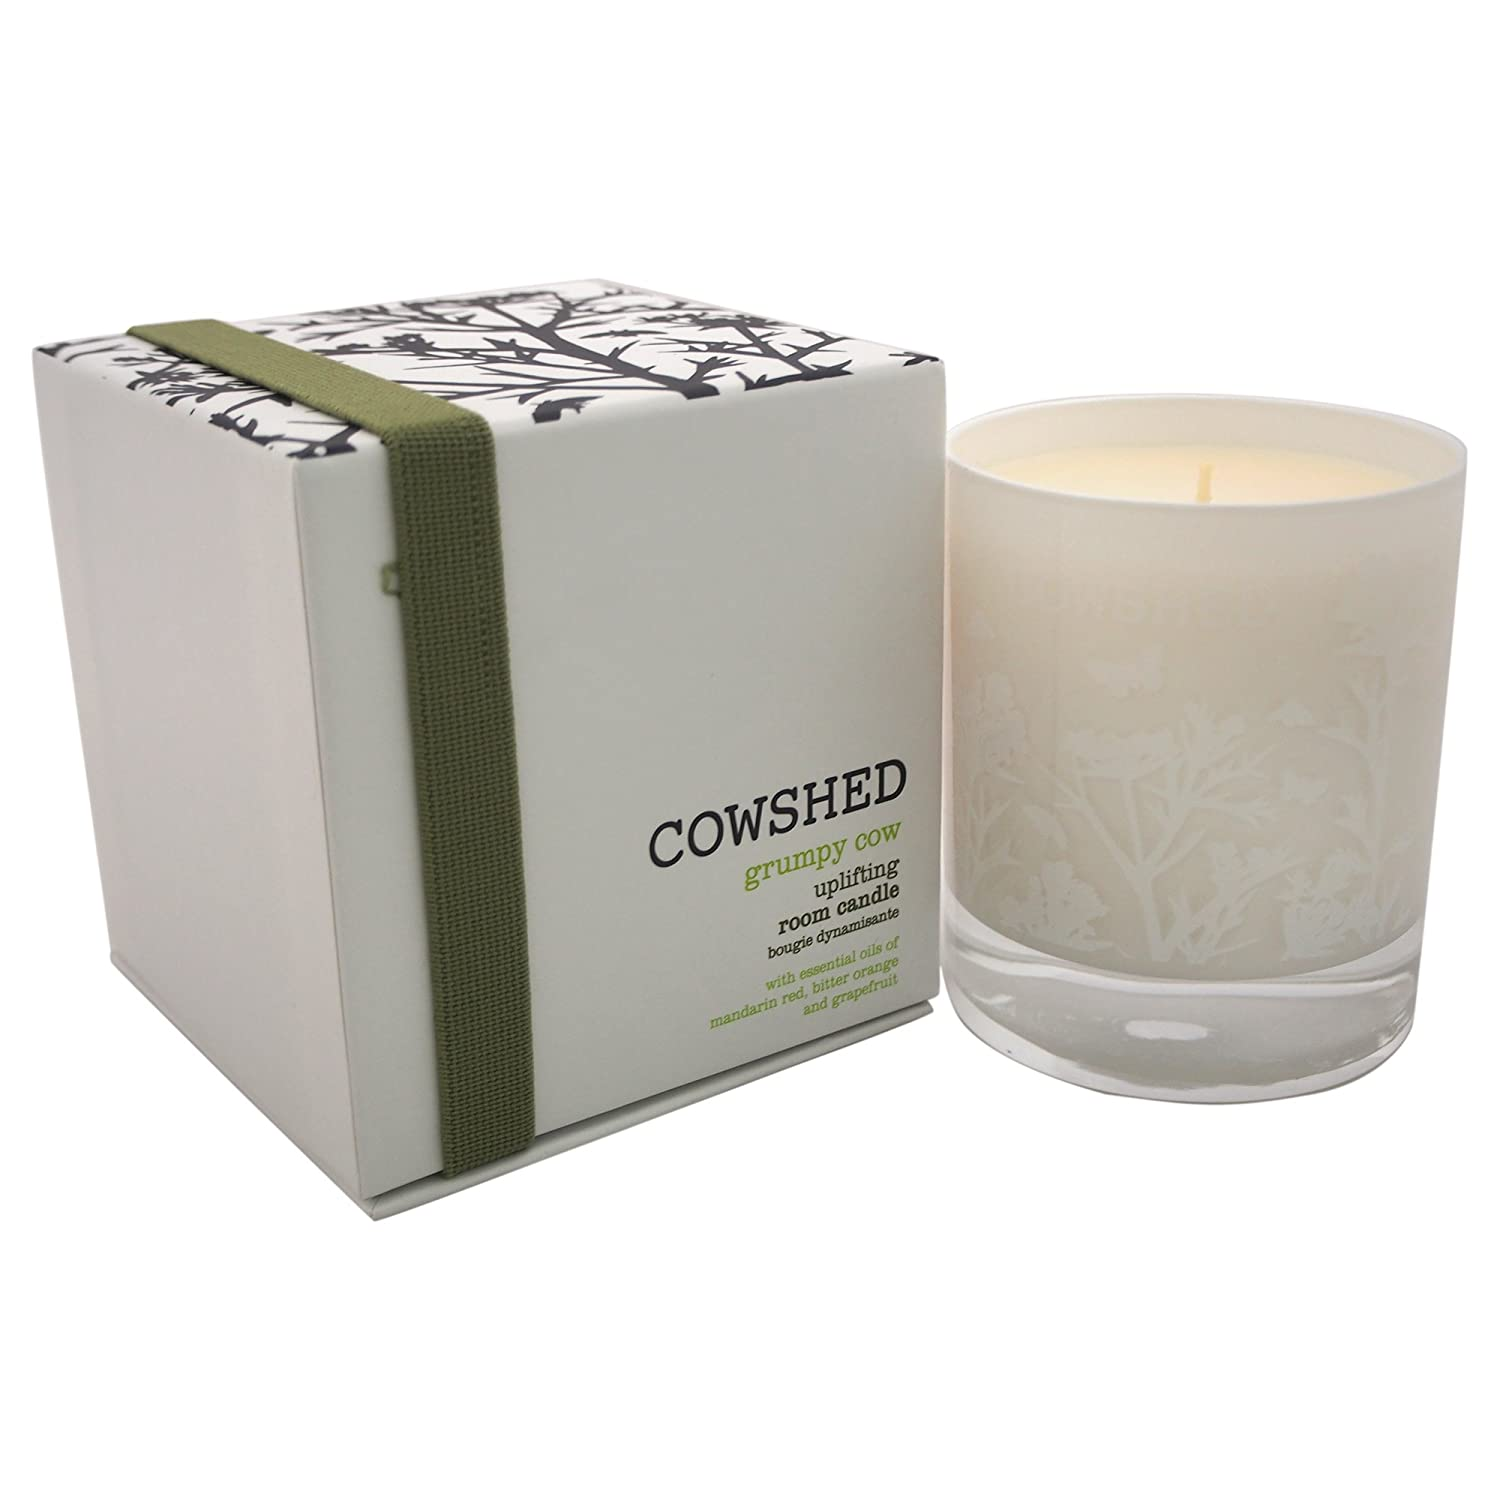 Cowshed  Grumpy Cow Uplifting Room Candle - Duftkerze